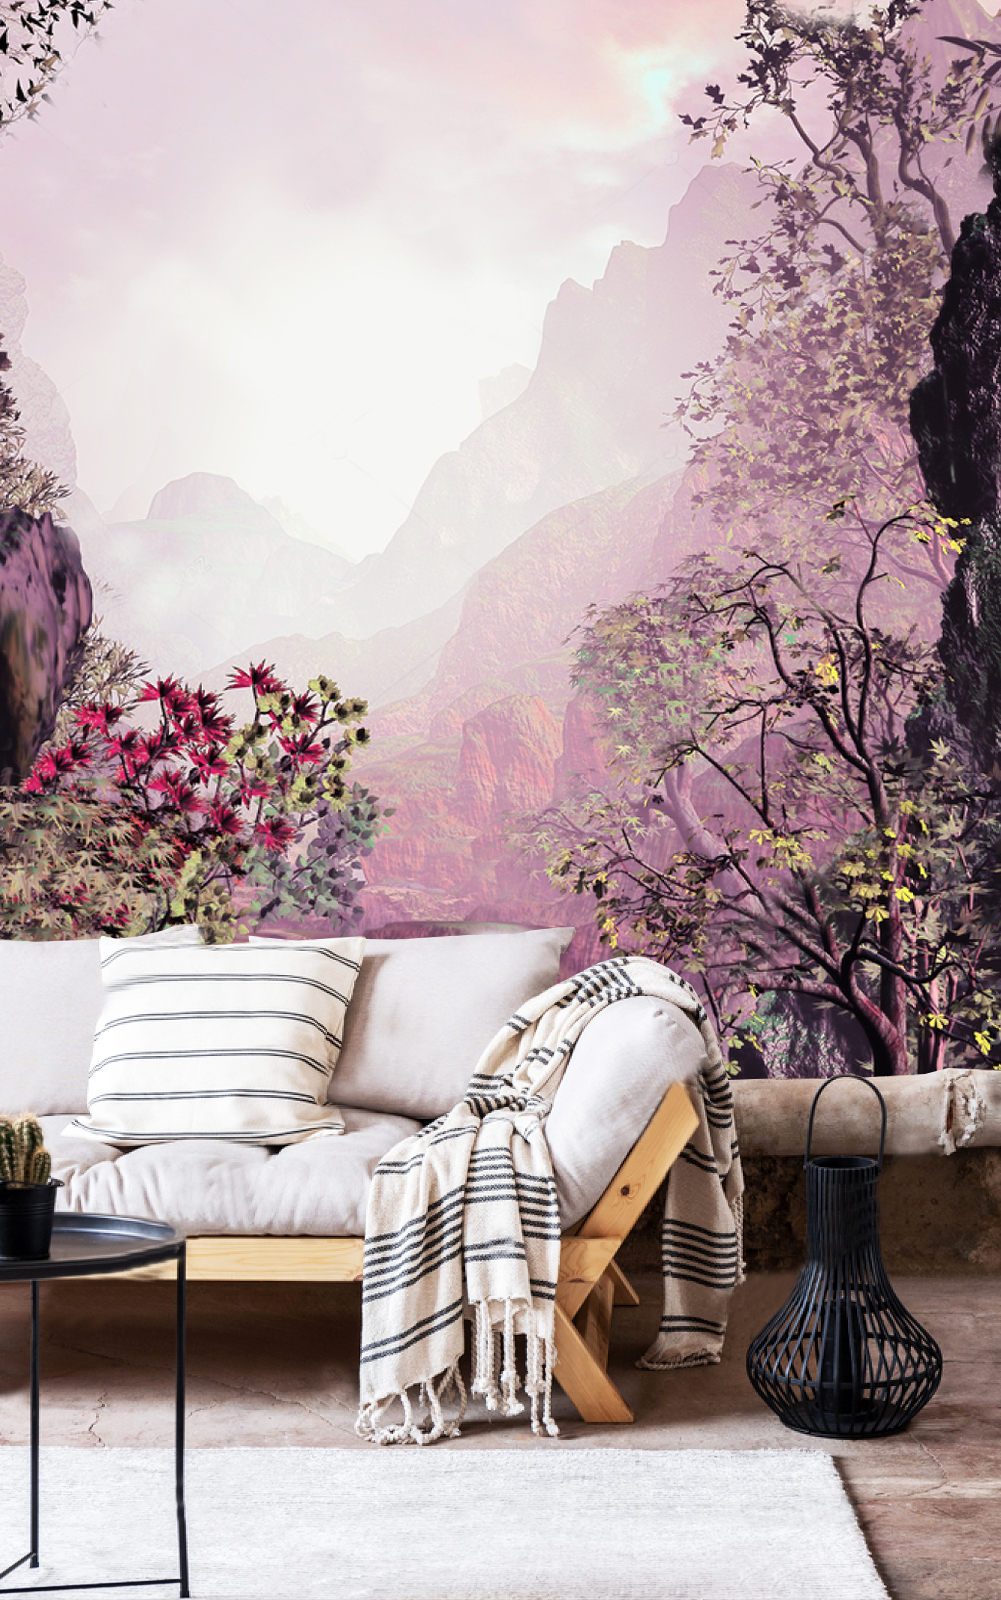 Wallpaper Landscape in pink Mountain in Fog Adhesive Vinyl 1001x1600